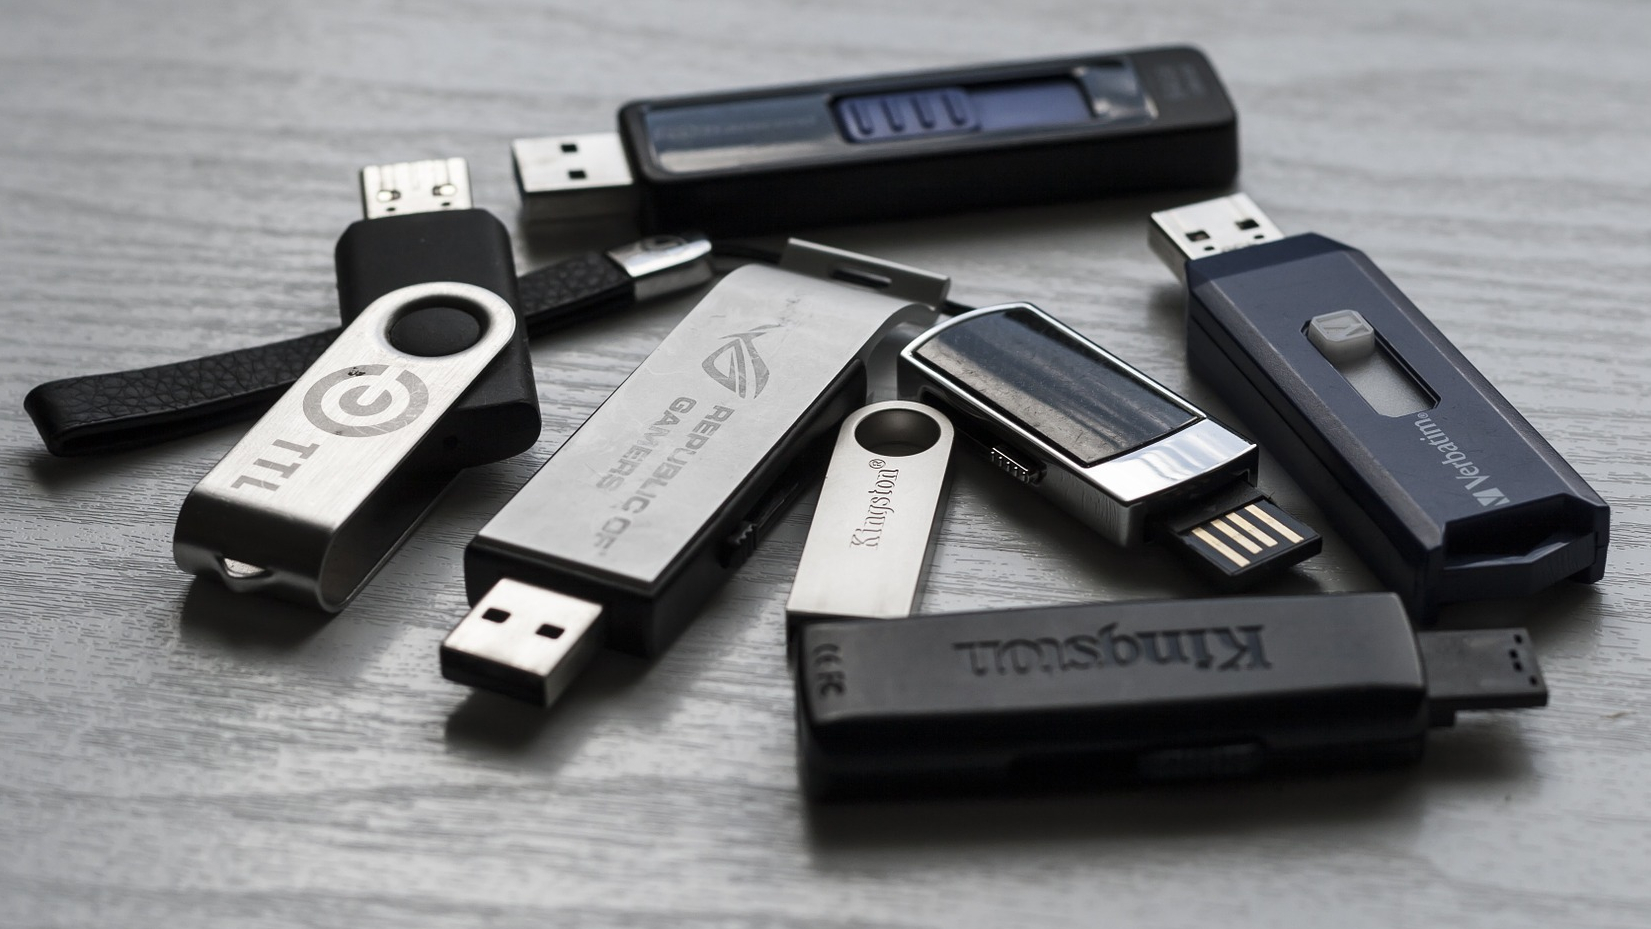 Best Usb Flash Drives 2018 Techradar Sandisk Otg 32gb Type C 31 Ultra Dual Drive